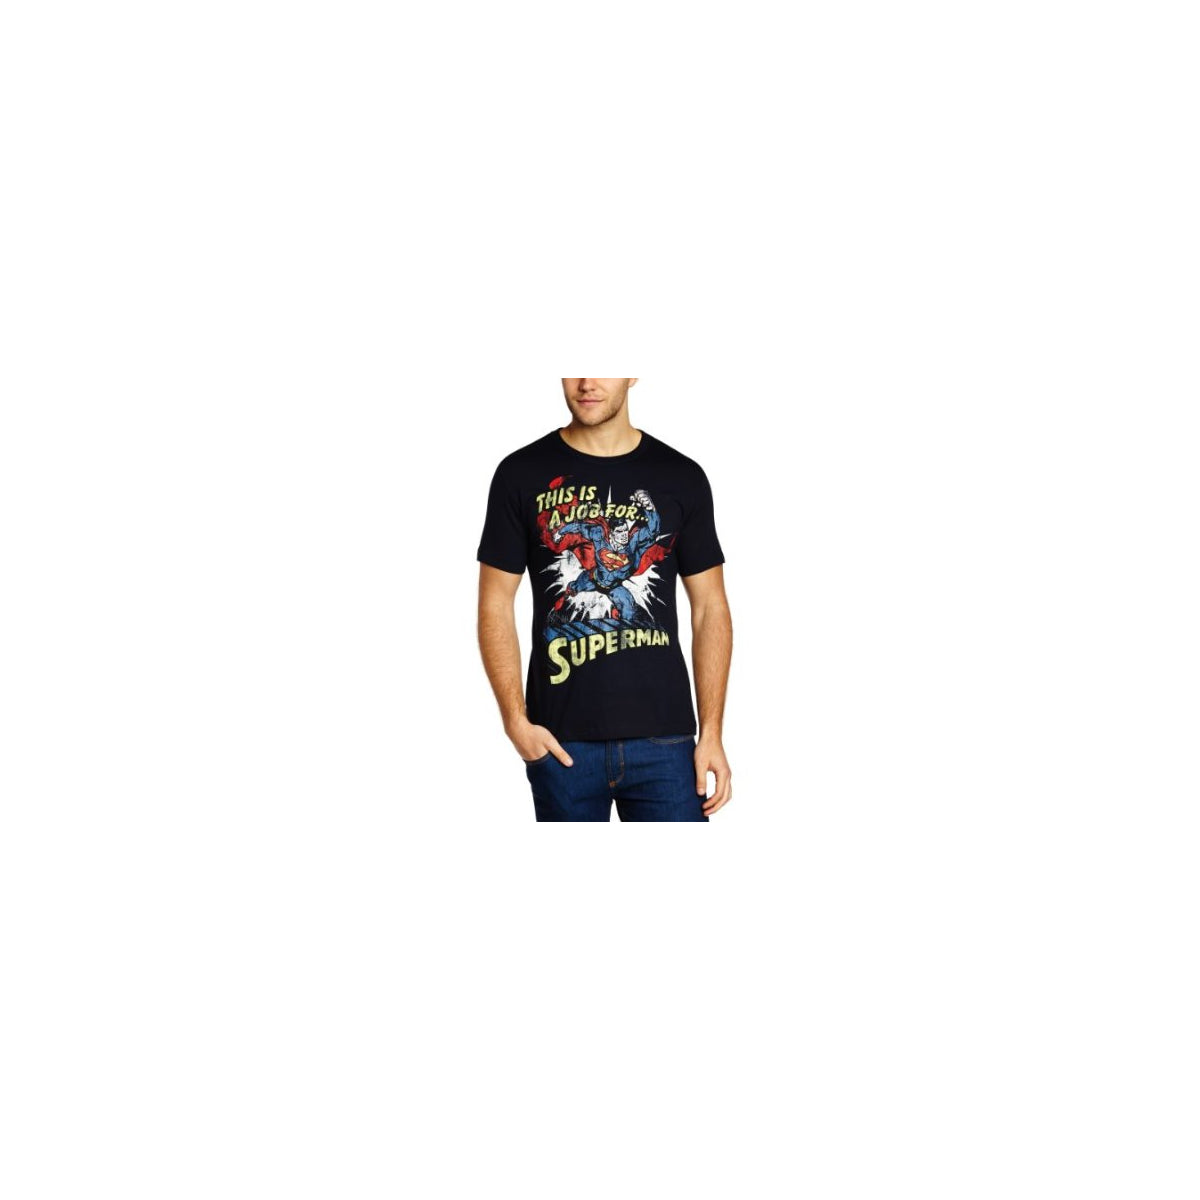 Marvel Comics mens T-shirt This is a job for Superman